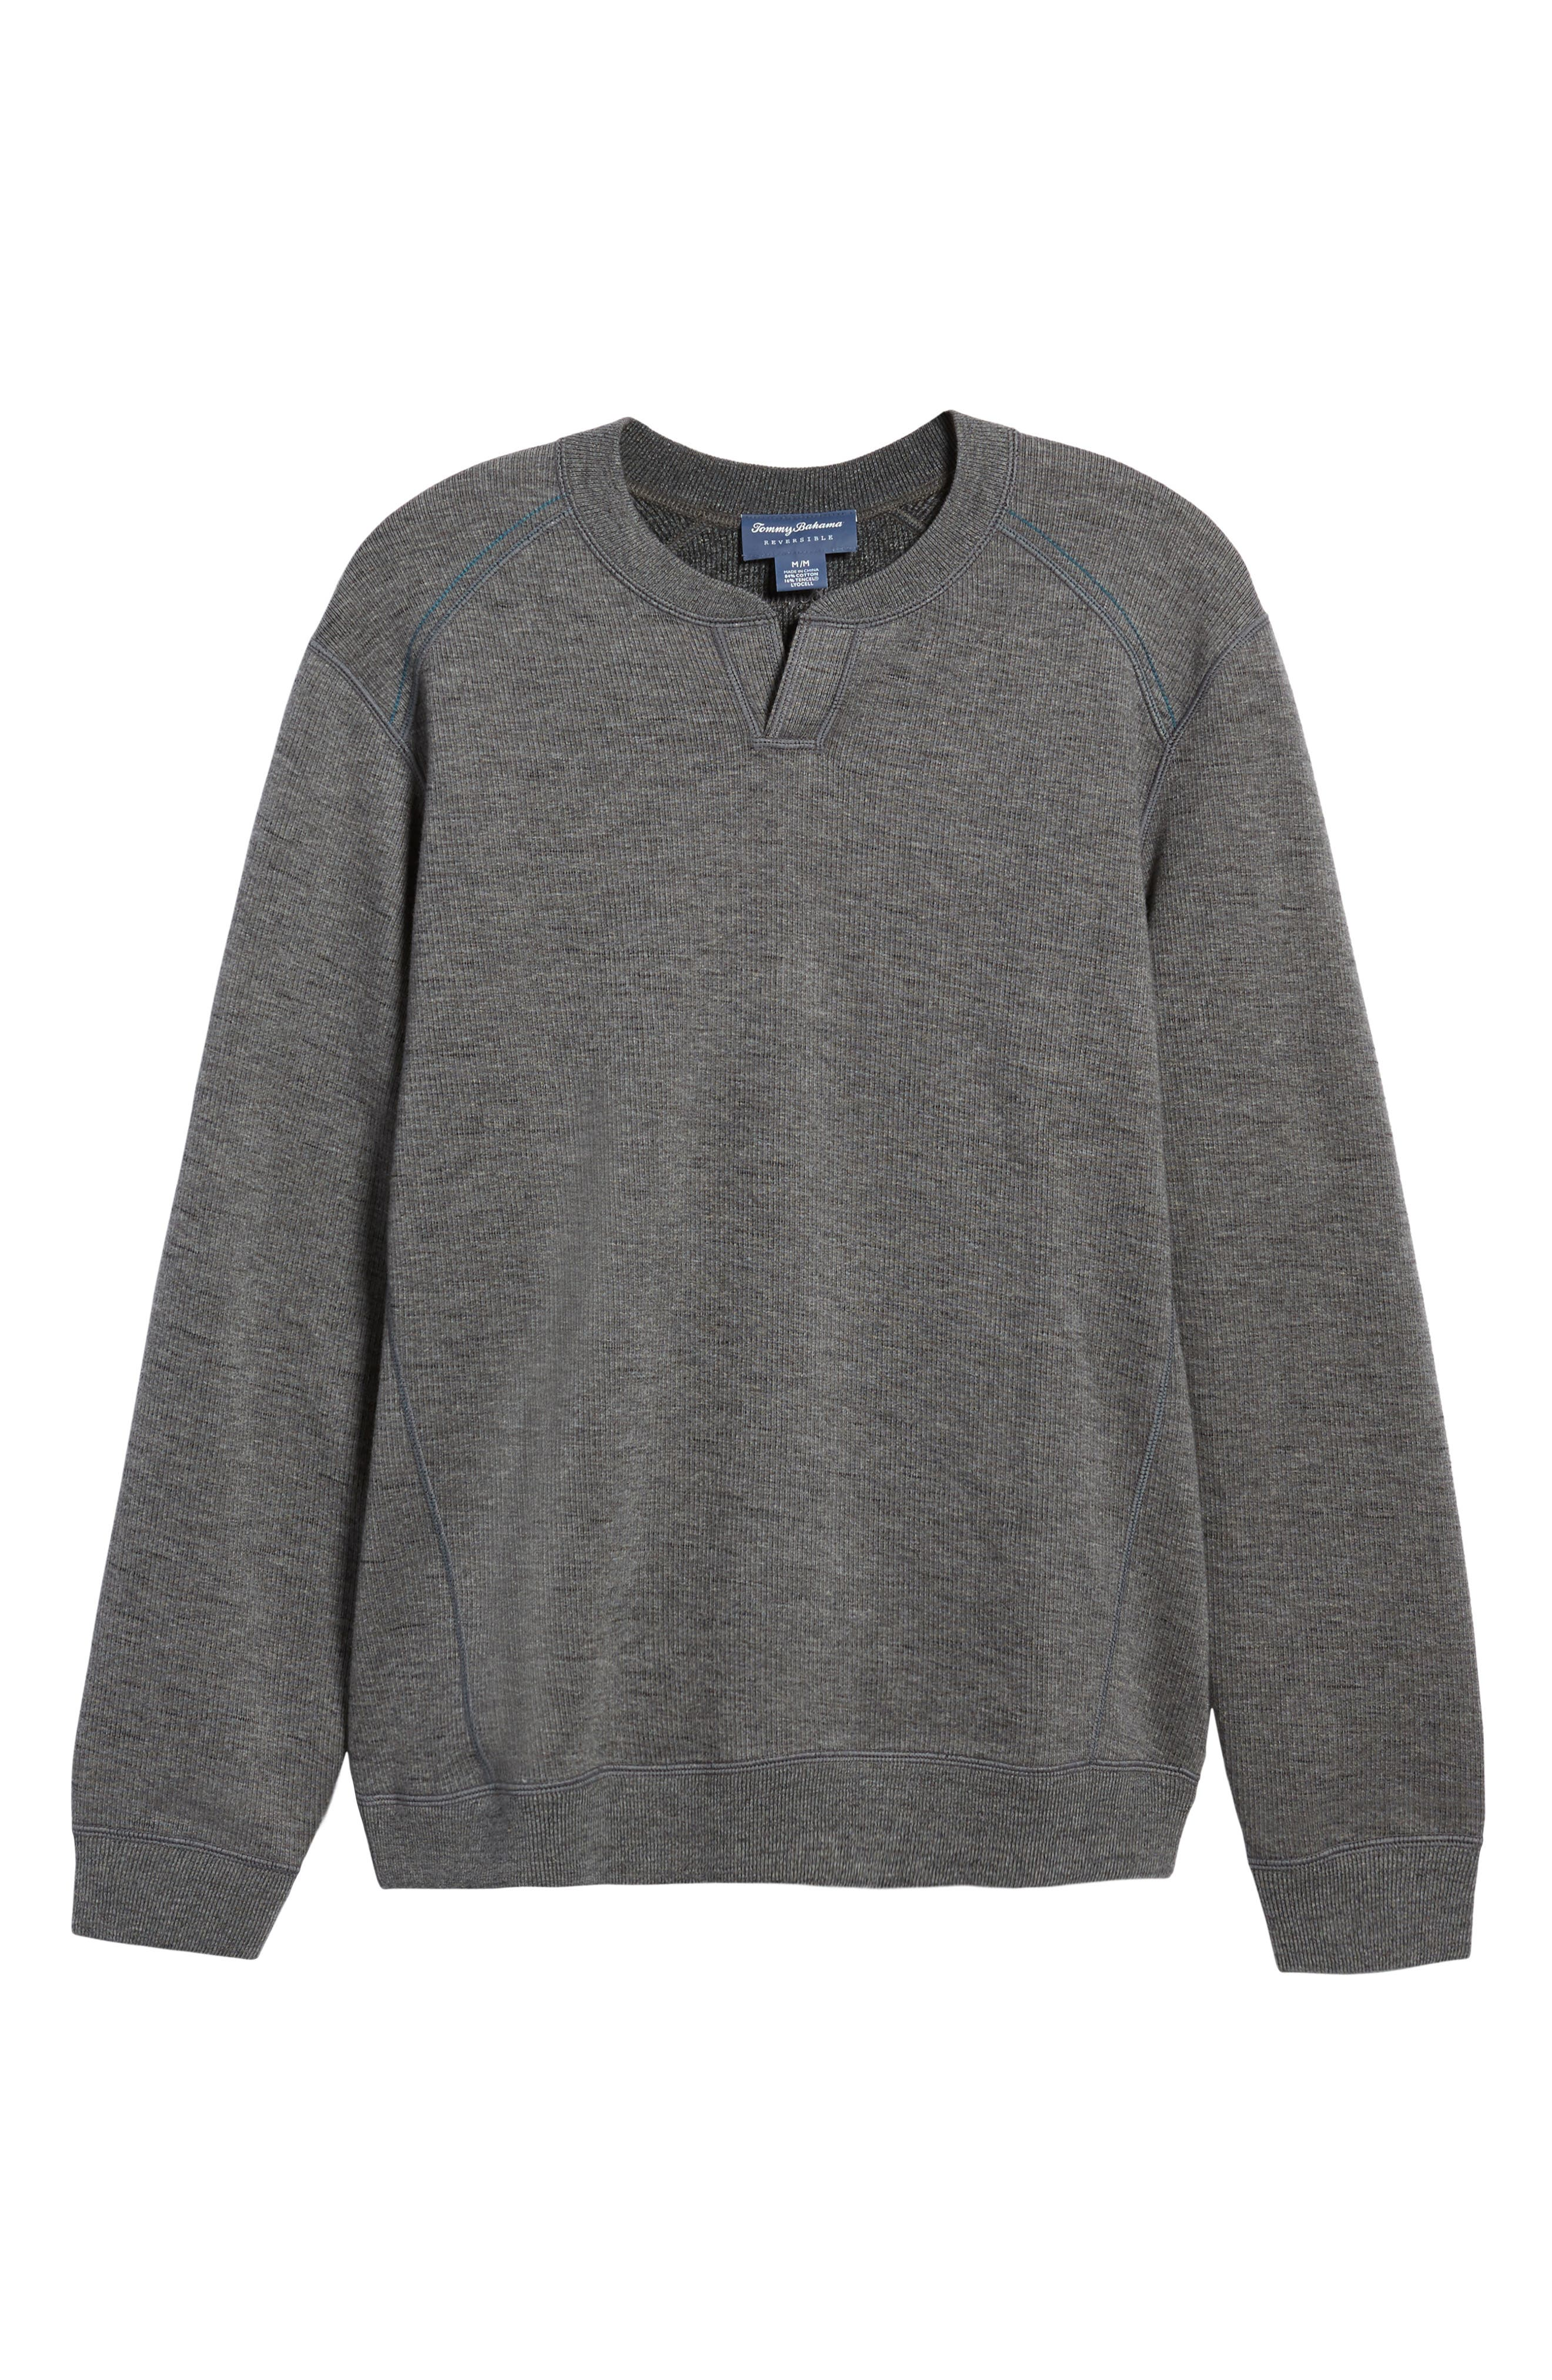 Flipsider Abaco Pullover,                             Alternate thumbnail 27, color,